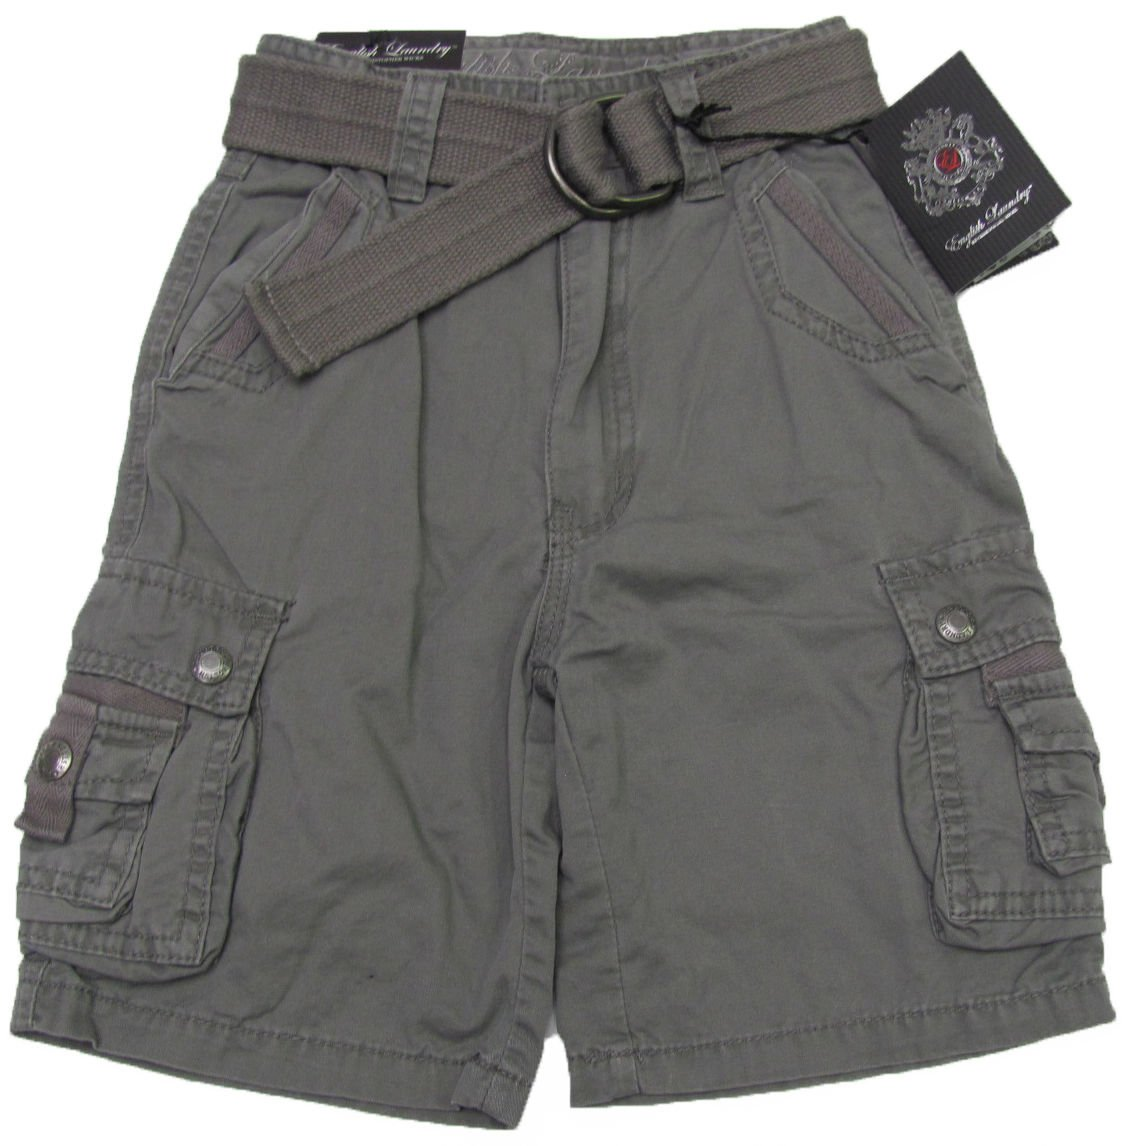 English Laundry Boys size 12 Gray Cargo Shorts with Belt New